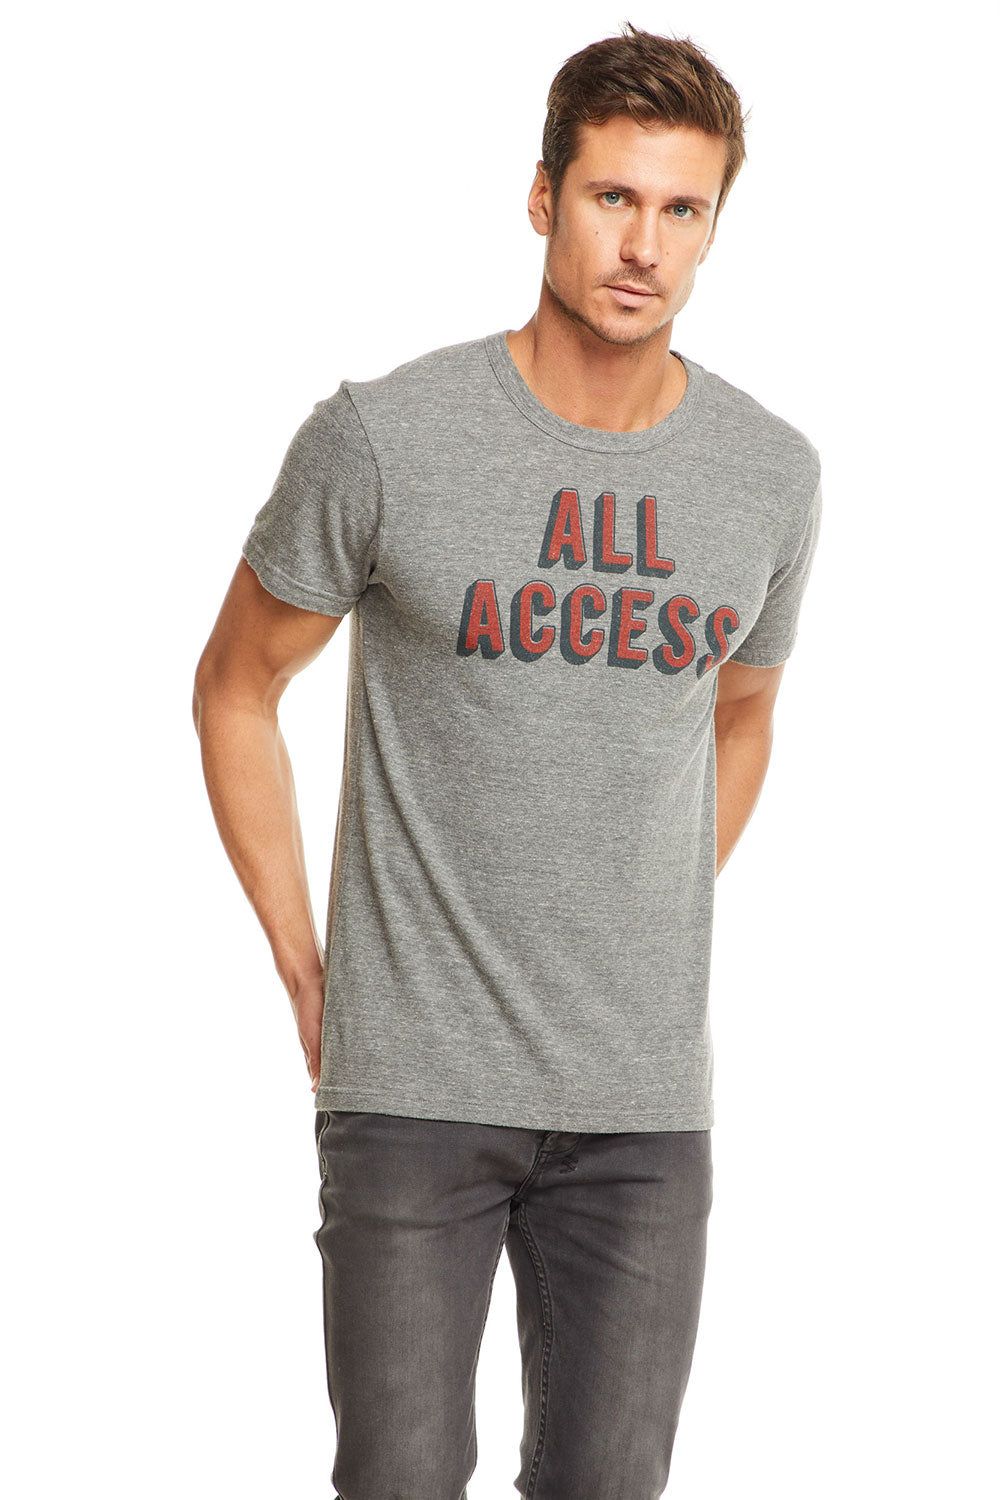 All Access MENS chaserbrand4.myshopify.com